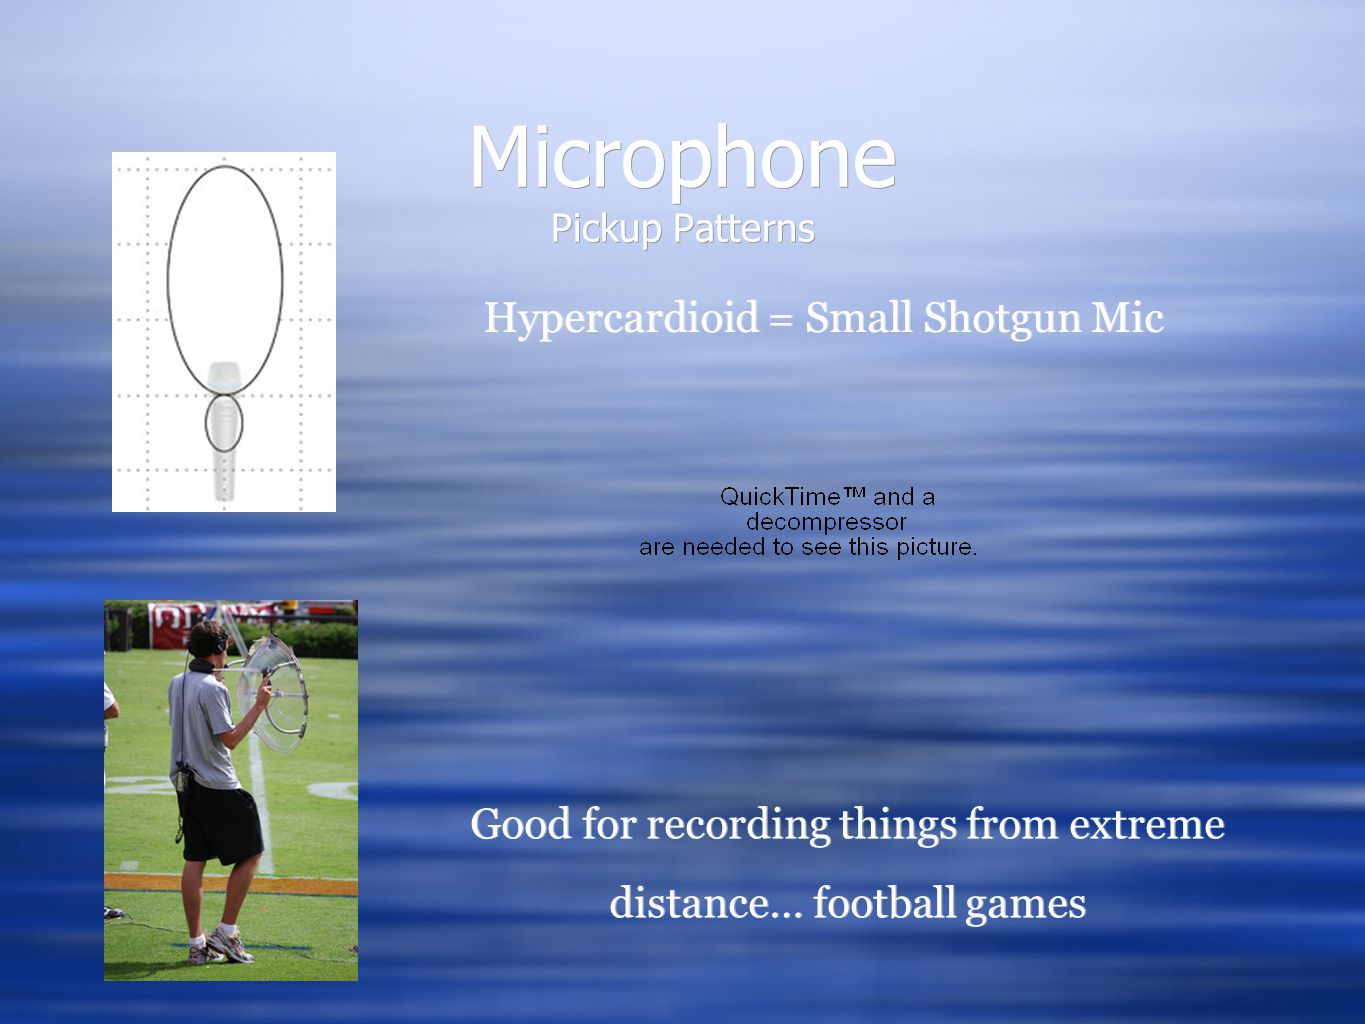 Microphone Pickup Patterns Hypercardioid = Small Shotgun Mic Hypercardioid = Small Shotgun Mic Good for recording things from extreme distance… football games Good for recording things from extreme distance… football games